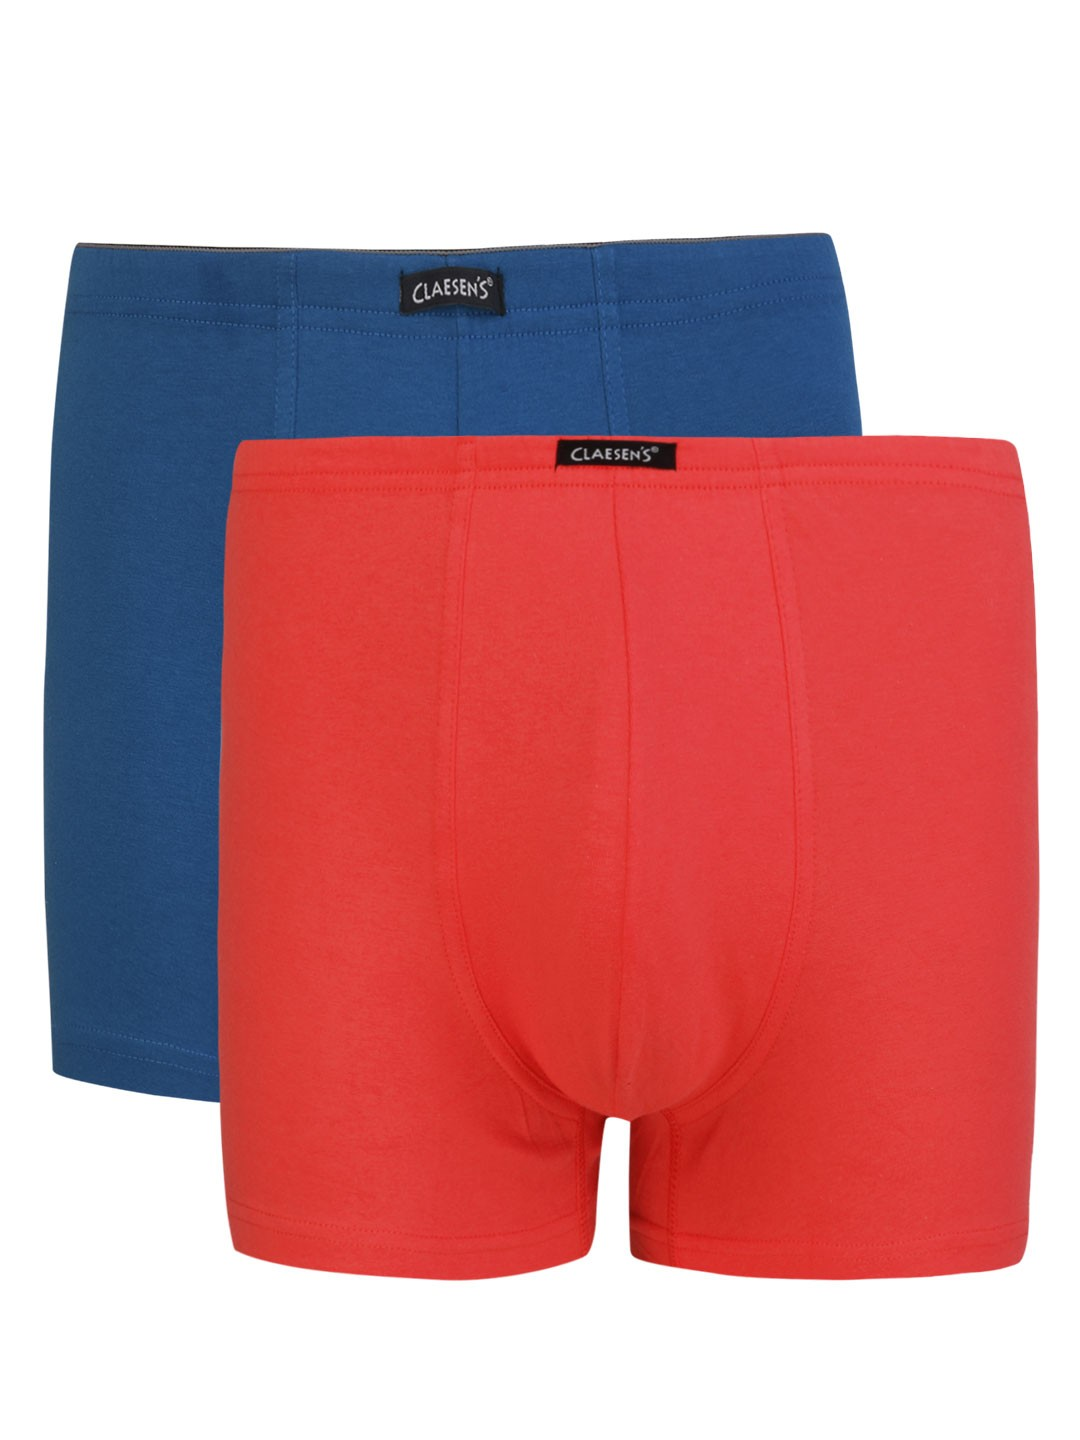 Claesens Holland Solid Classic Trunks   Pack Of 2